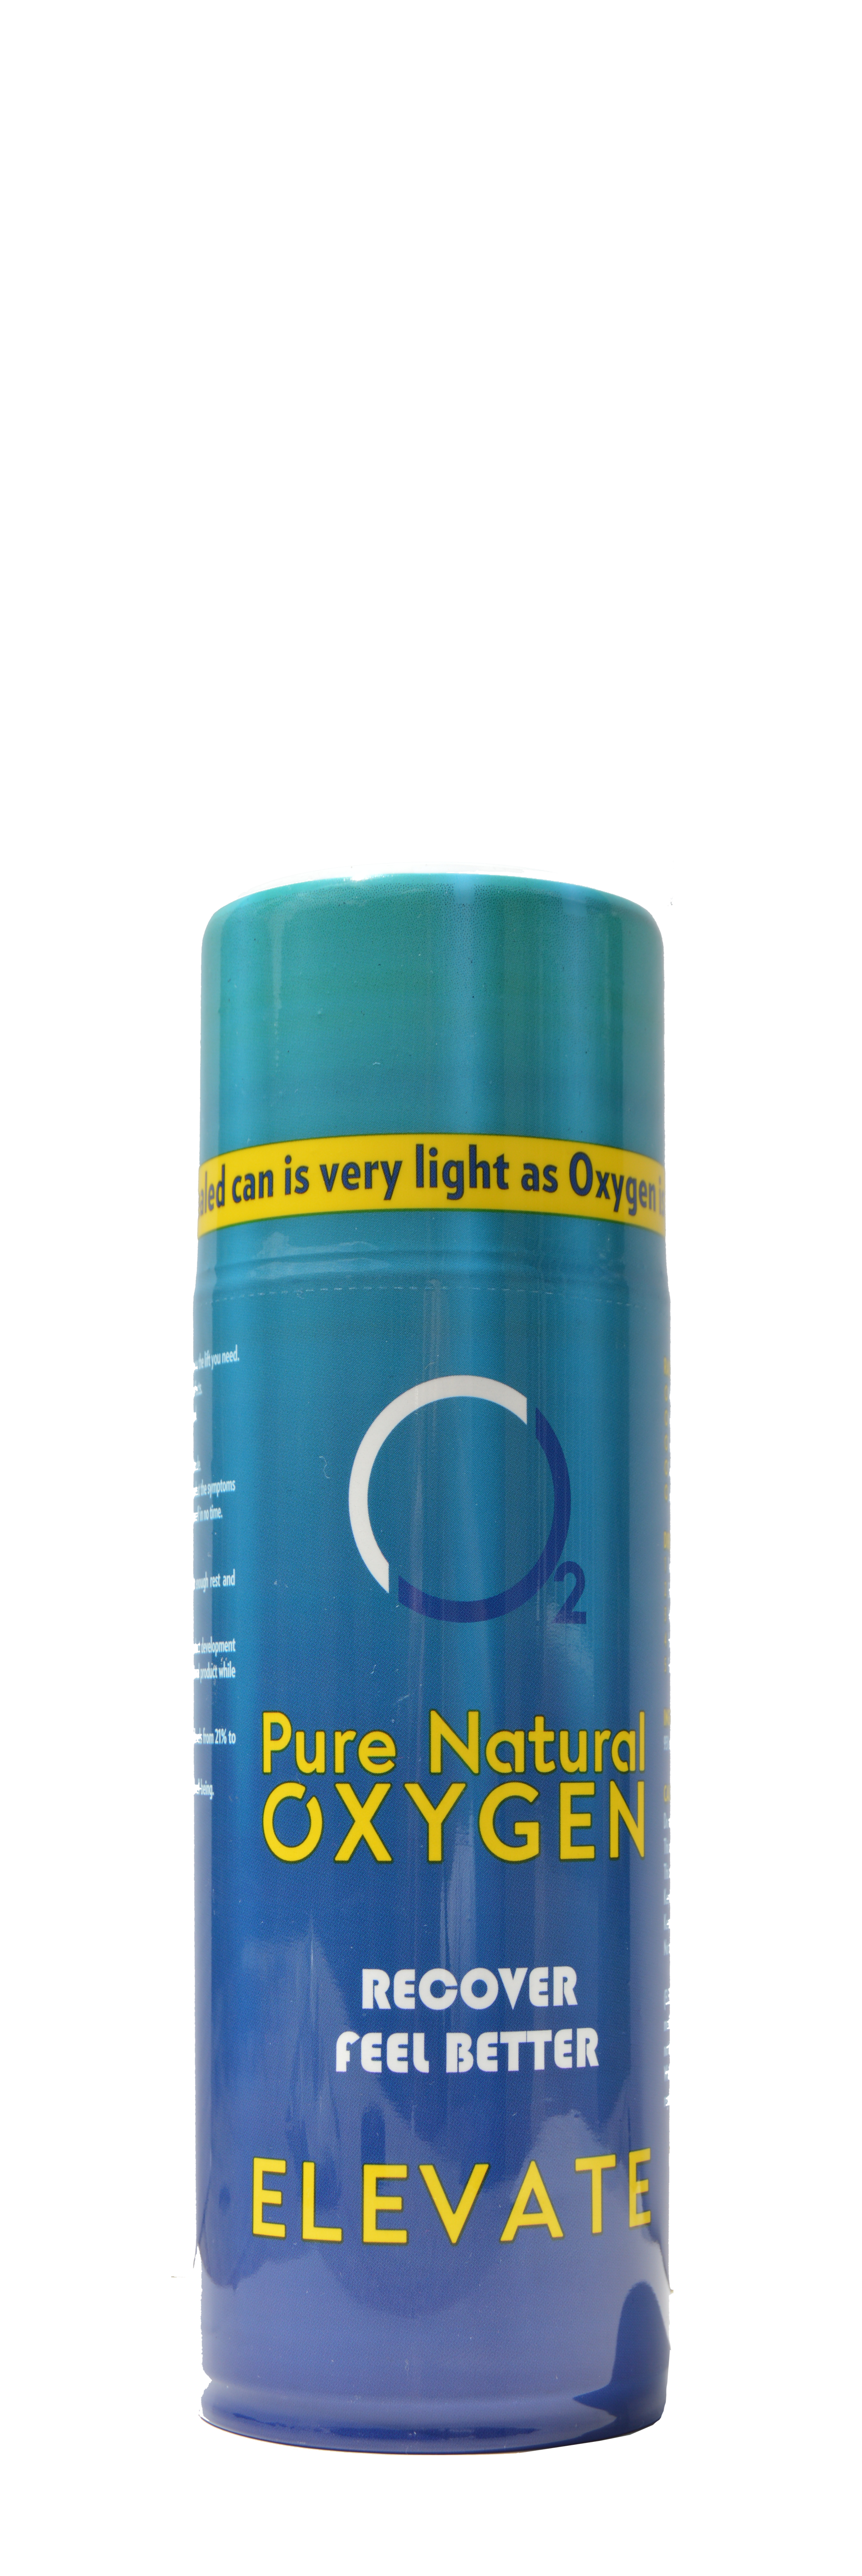 Elevate O2 Extra Oxygen 2 L - Greatest deals